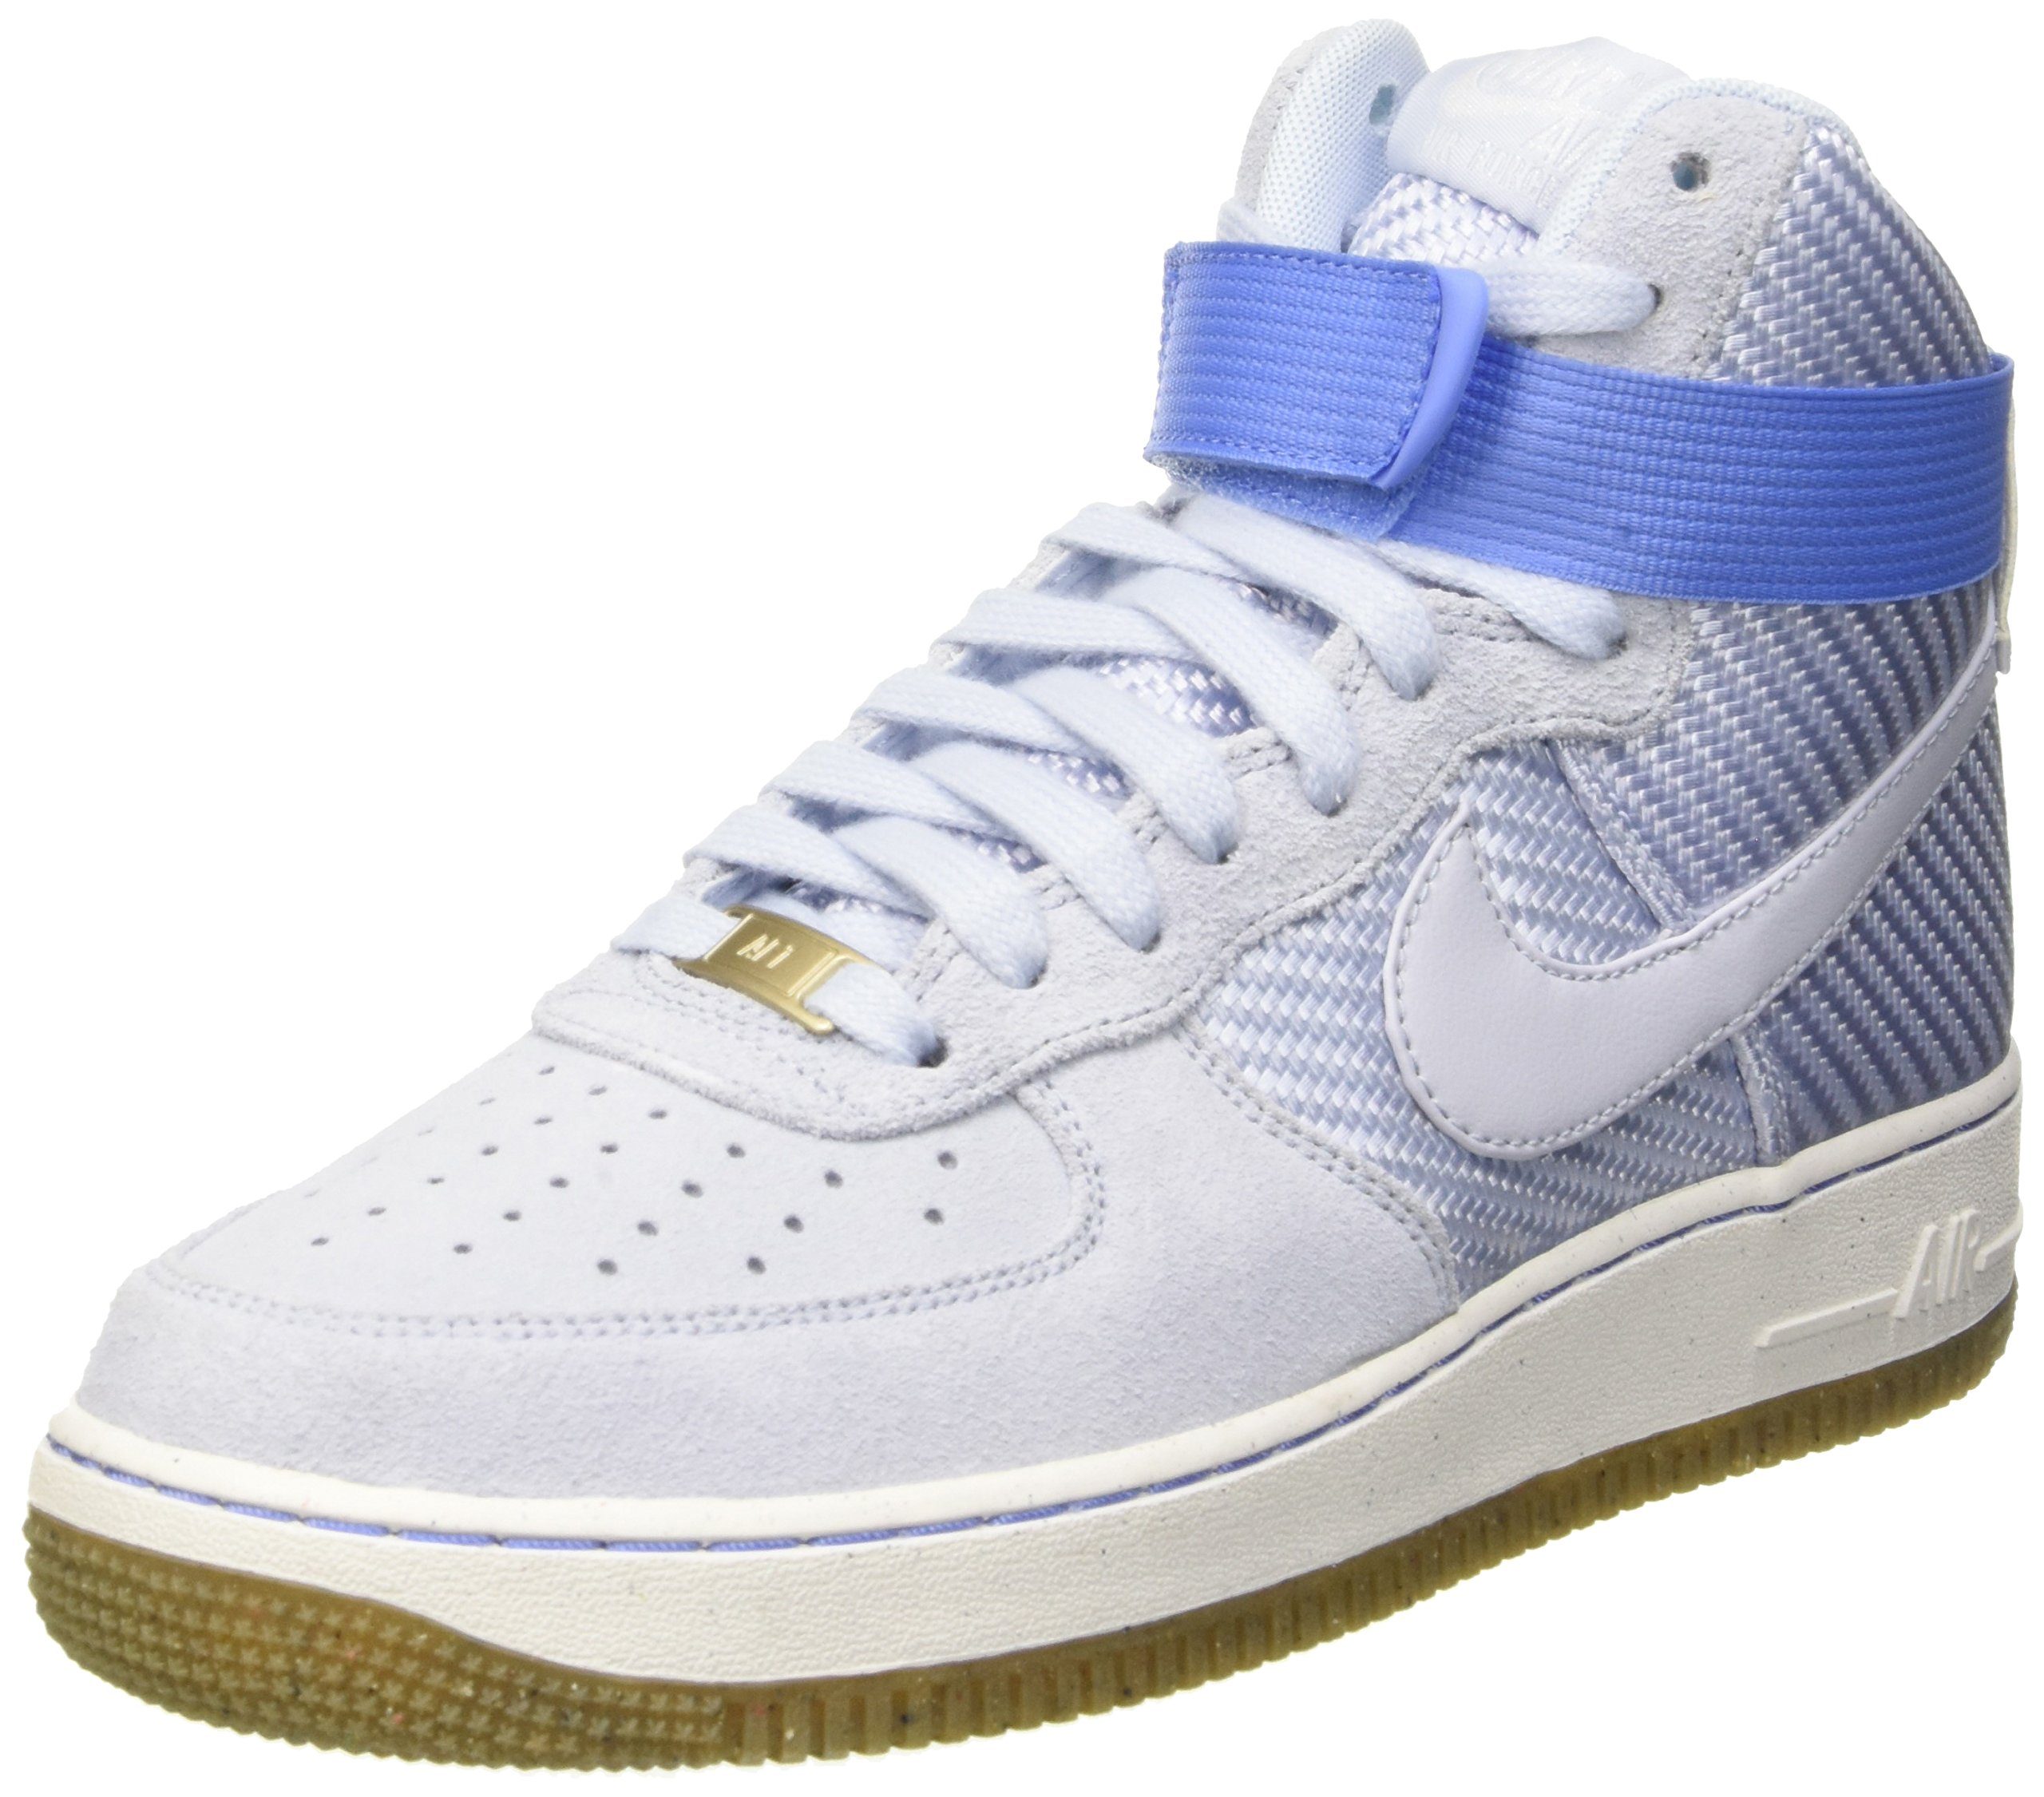 Nike Womens Air Force 1 Hi Prm Porpoise/Porpoise Basketball Shoe 8 Women US